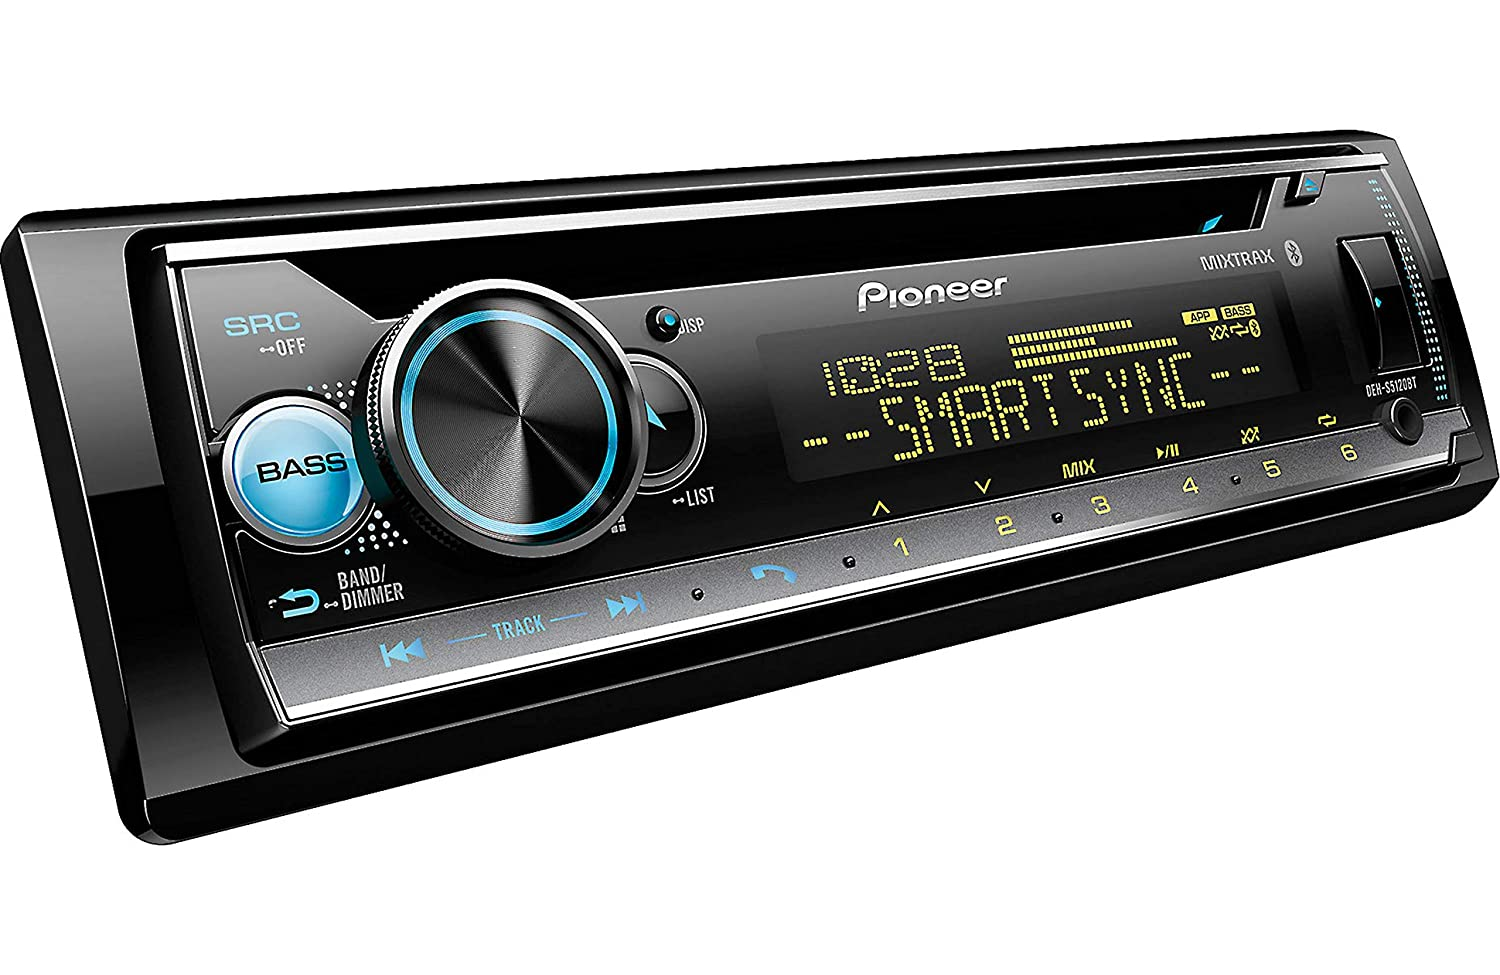 Pioneer DEH-S5120BT in-Dash Built-in Bluetooth CD, MP3, Front USB, Auxiliary, Pandora, AM FM, Built in iPod, iPhone and iPad Controls, ARC Phone app, Dual Phone Connection Stereo Receiver